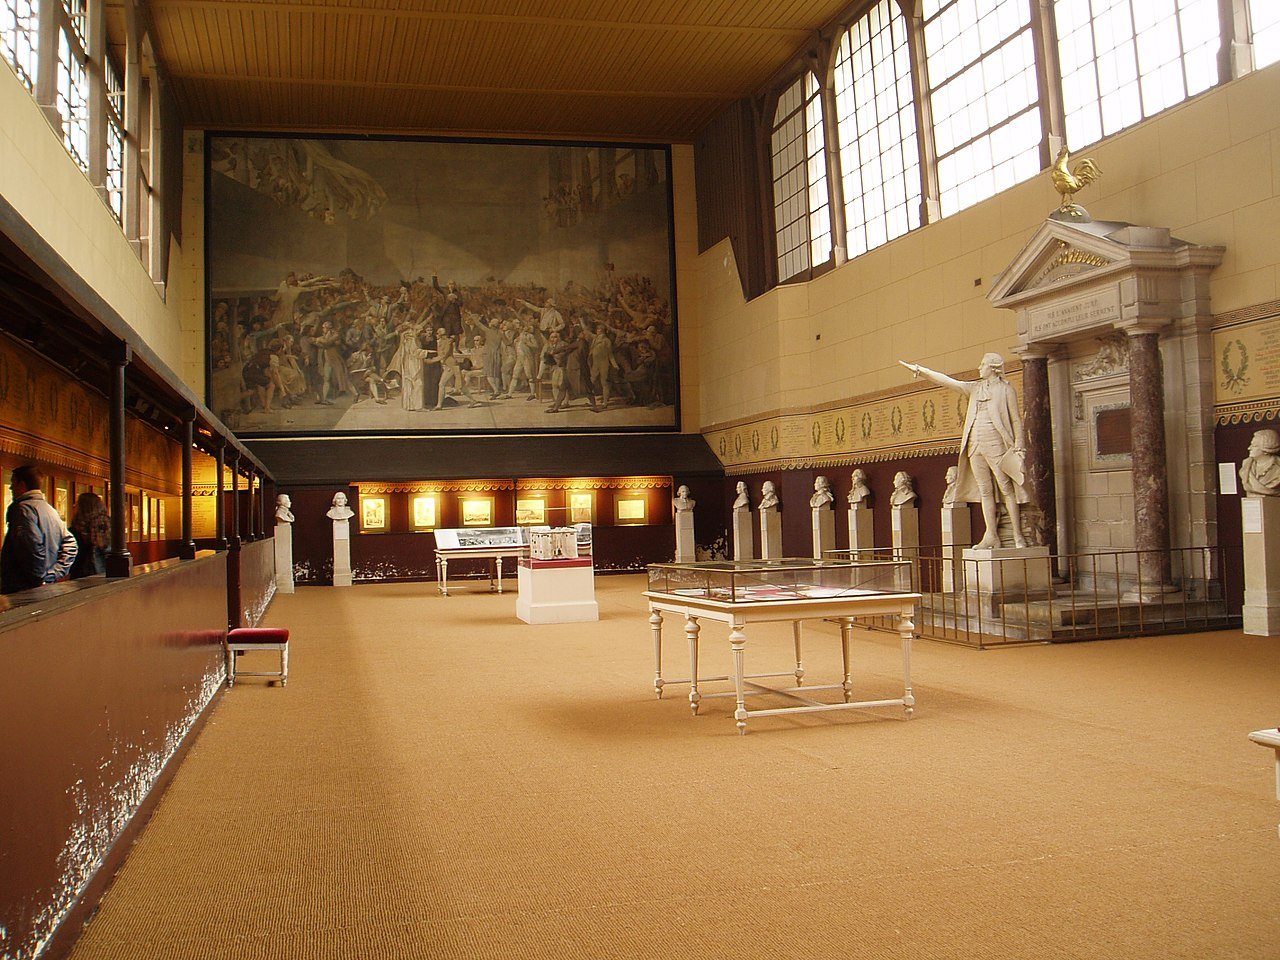 http://upload.wikimedia.org/wikipedia/commons/thumb/8/82/Salle_jeu_de_paume_versailles_int%C3%A9rieur_2.jpg/1280px-Salle_jeu_de_paume_versailles_int%C3%A9rieur_2.jpg